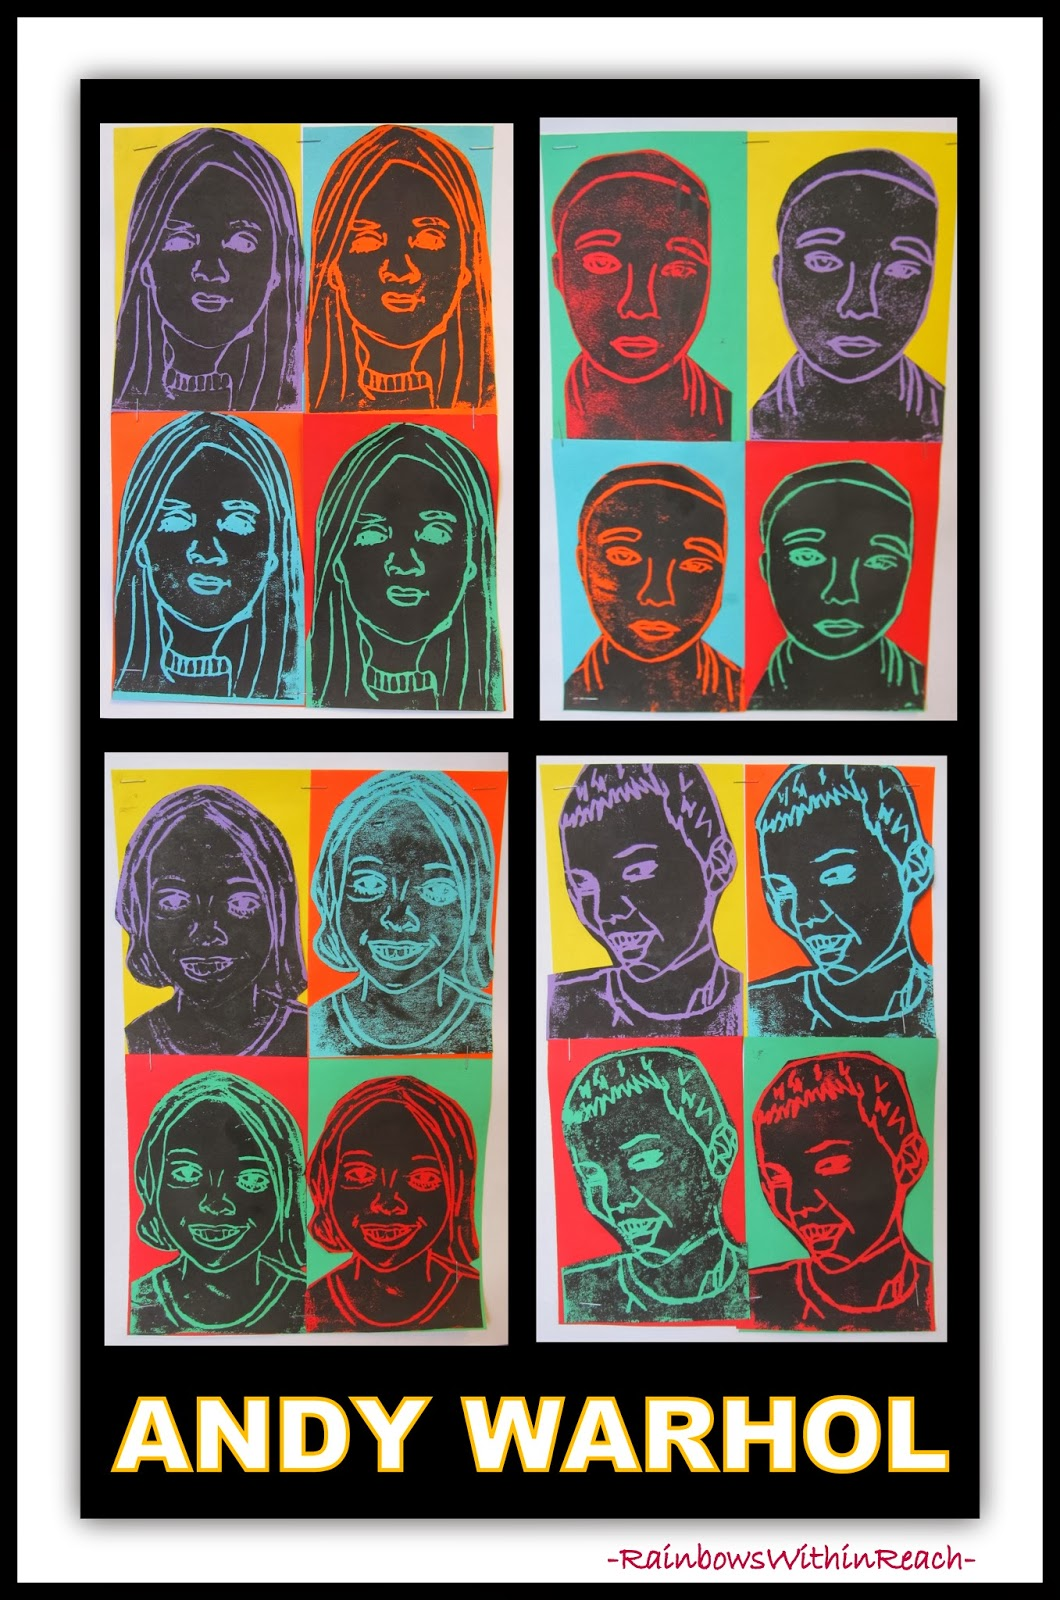 Andy Warhol Printmaking Self-Portraits at RainbowsWithinReach